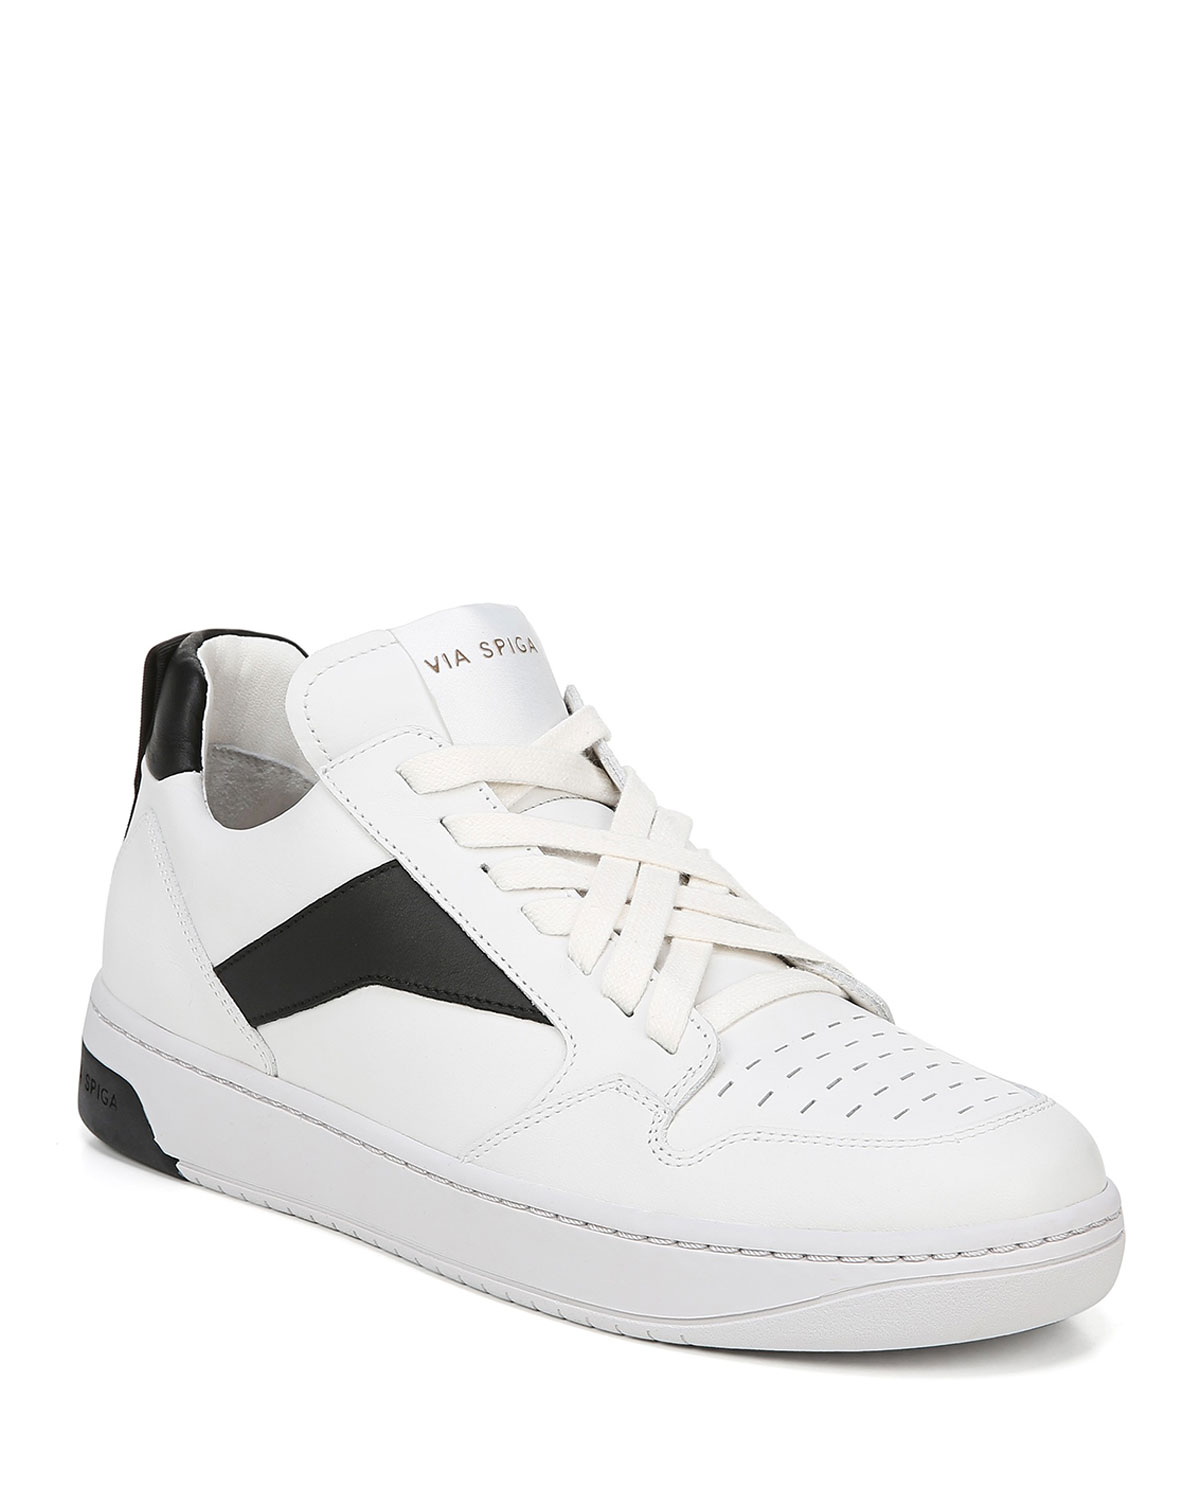 Lowrie Silky Leather Mid-Top Sneakers